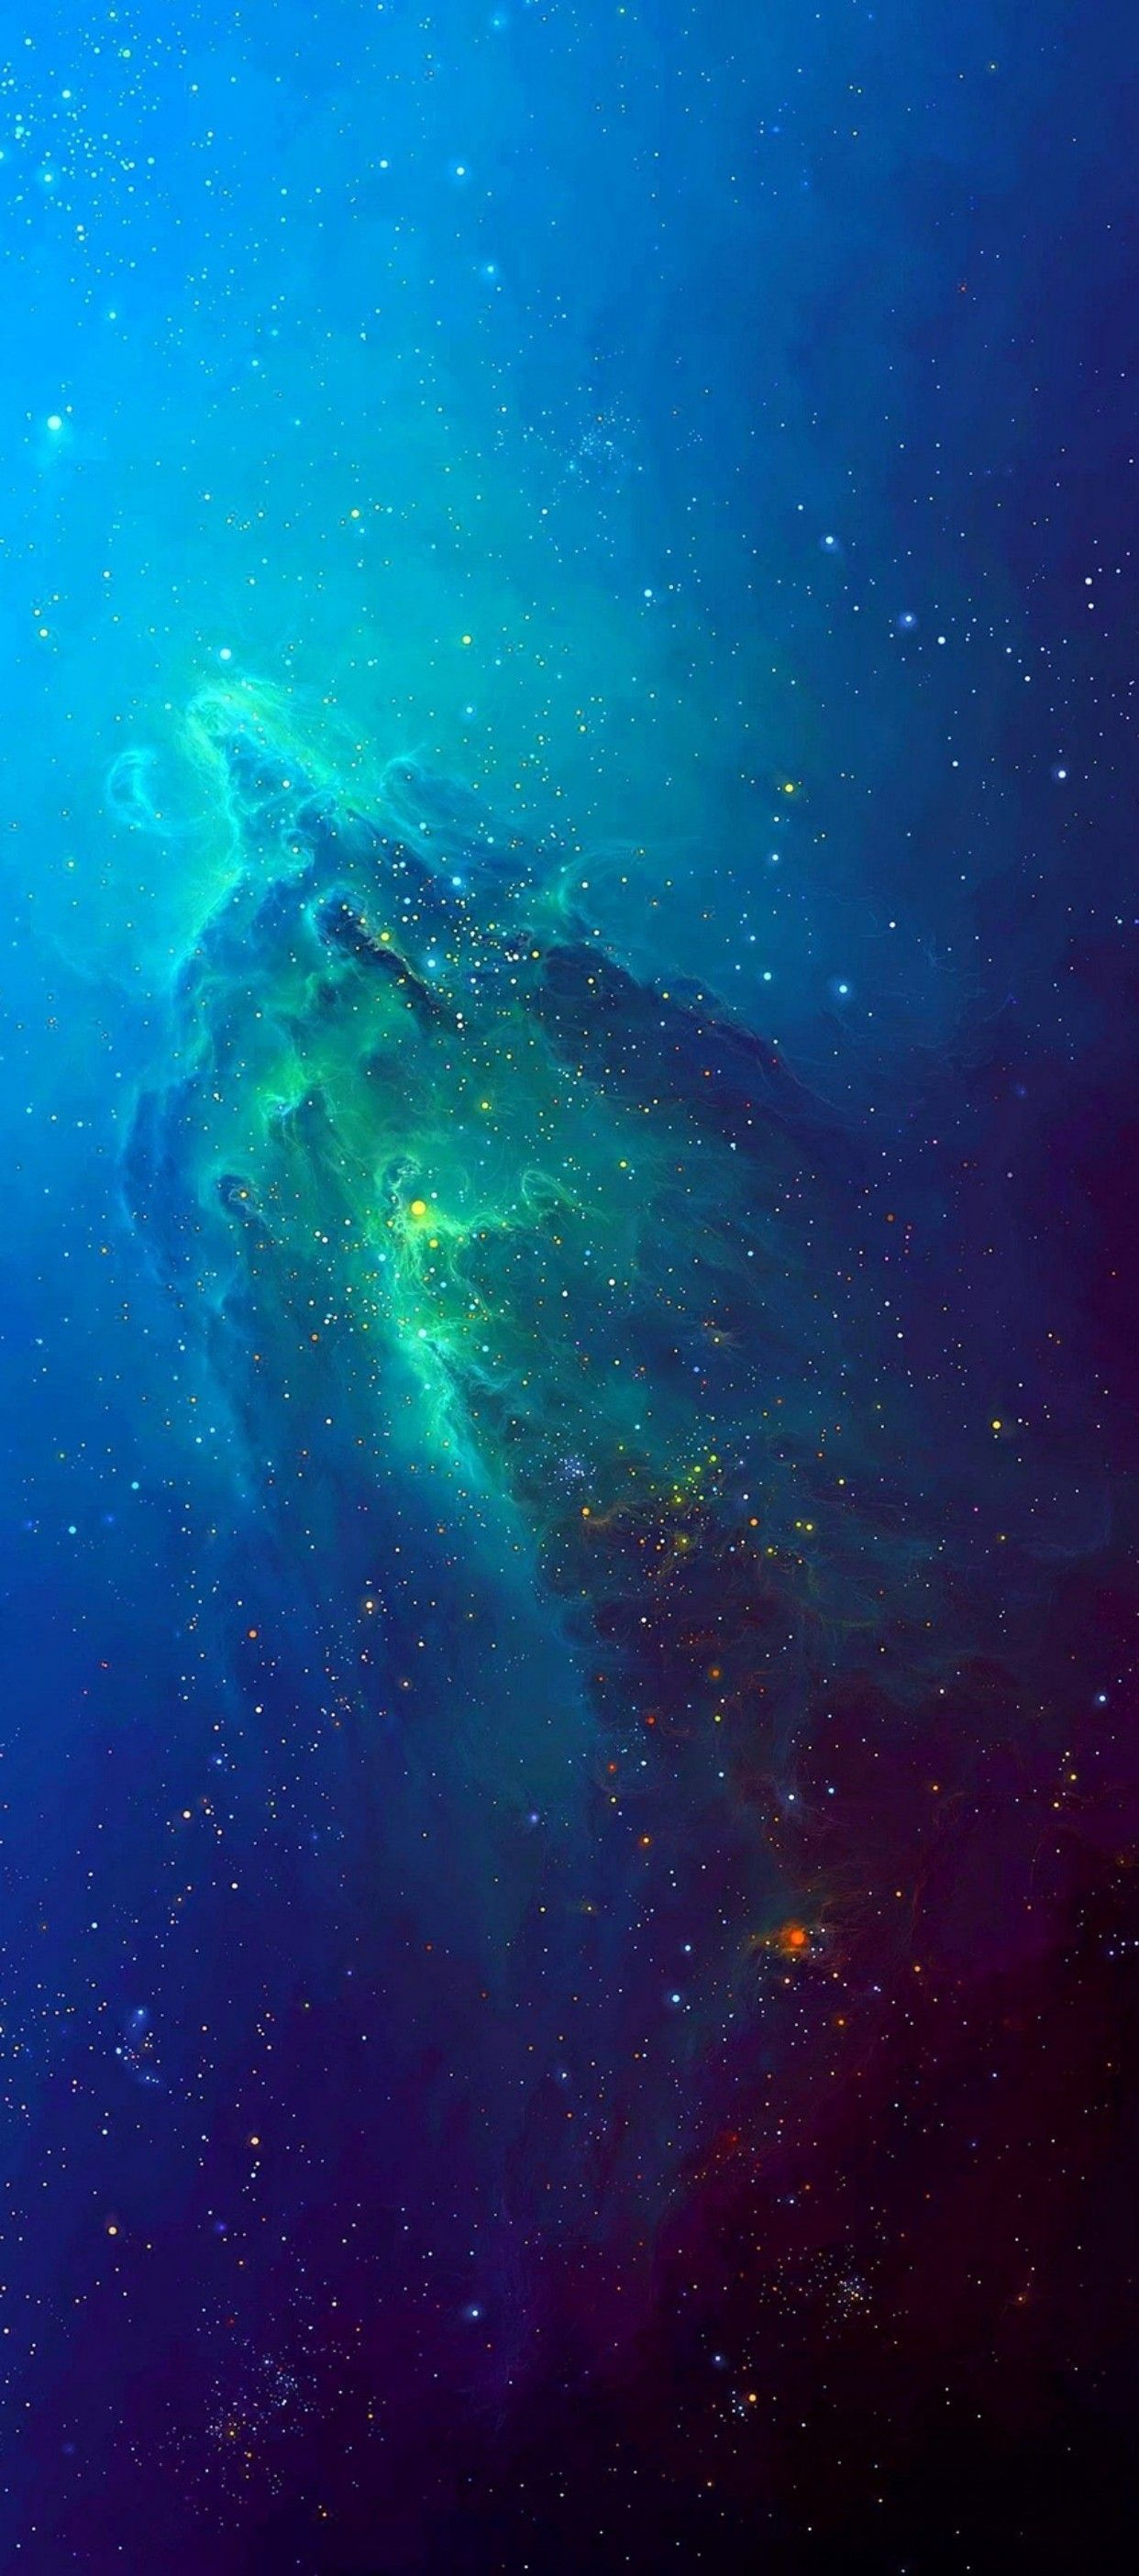 Ios 11 Iphone X Stars Space Blue Aqua Abstract Apple